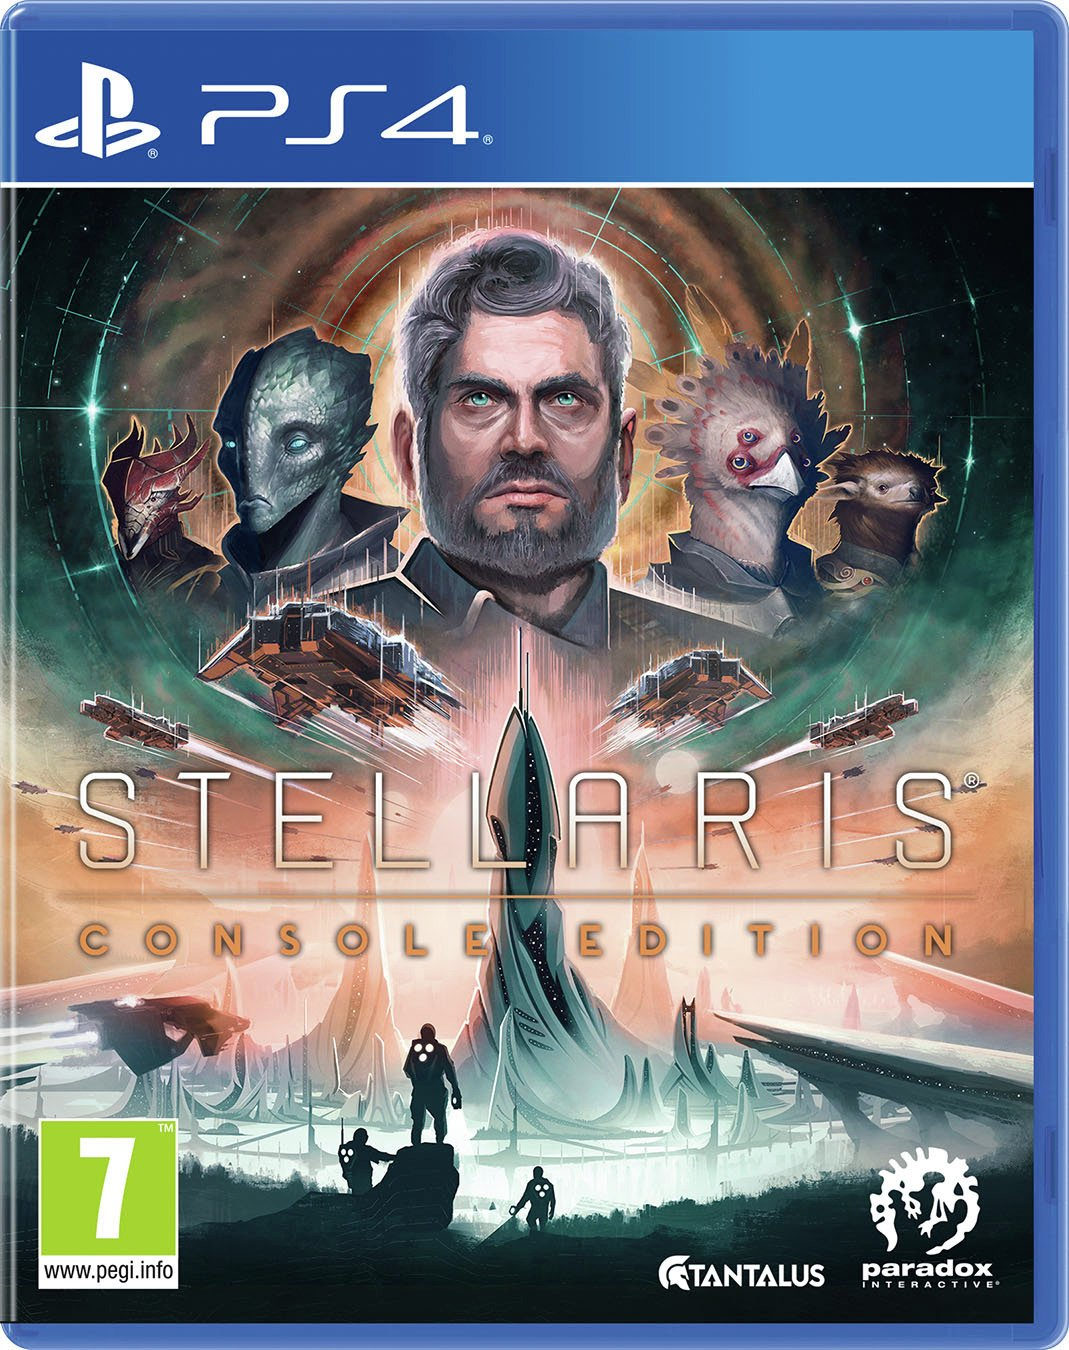 Stellaris: Console Edition PS4 Game